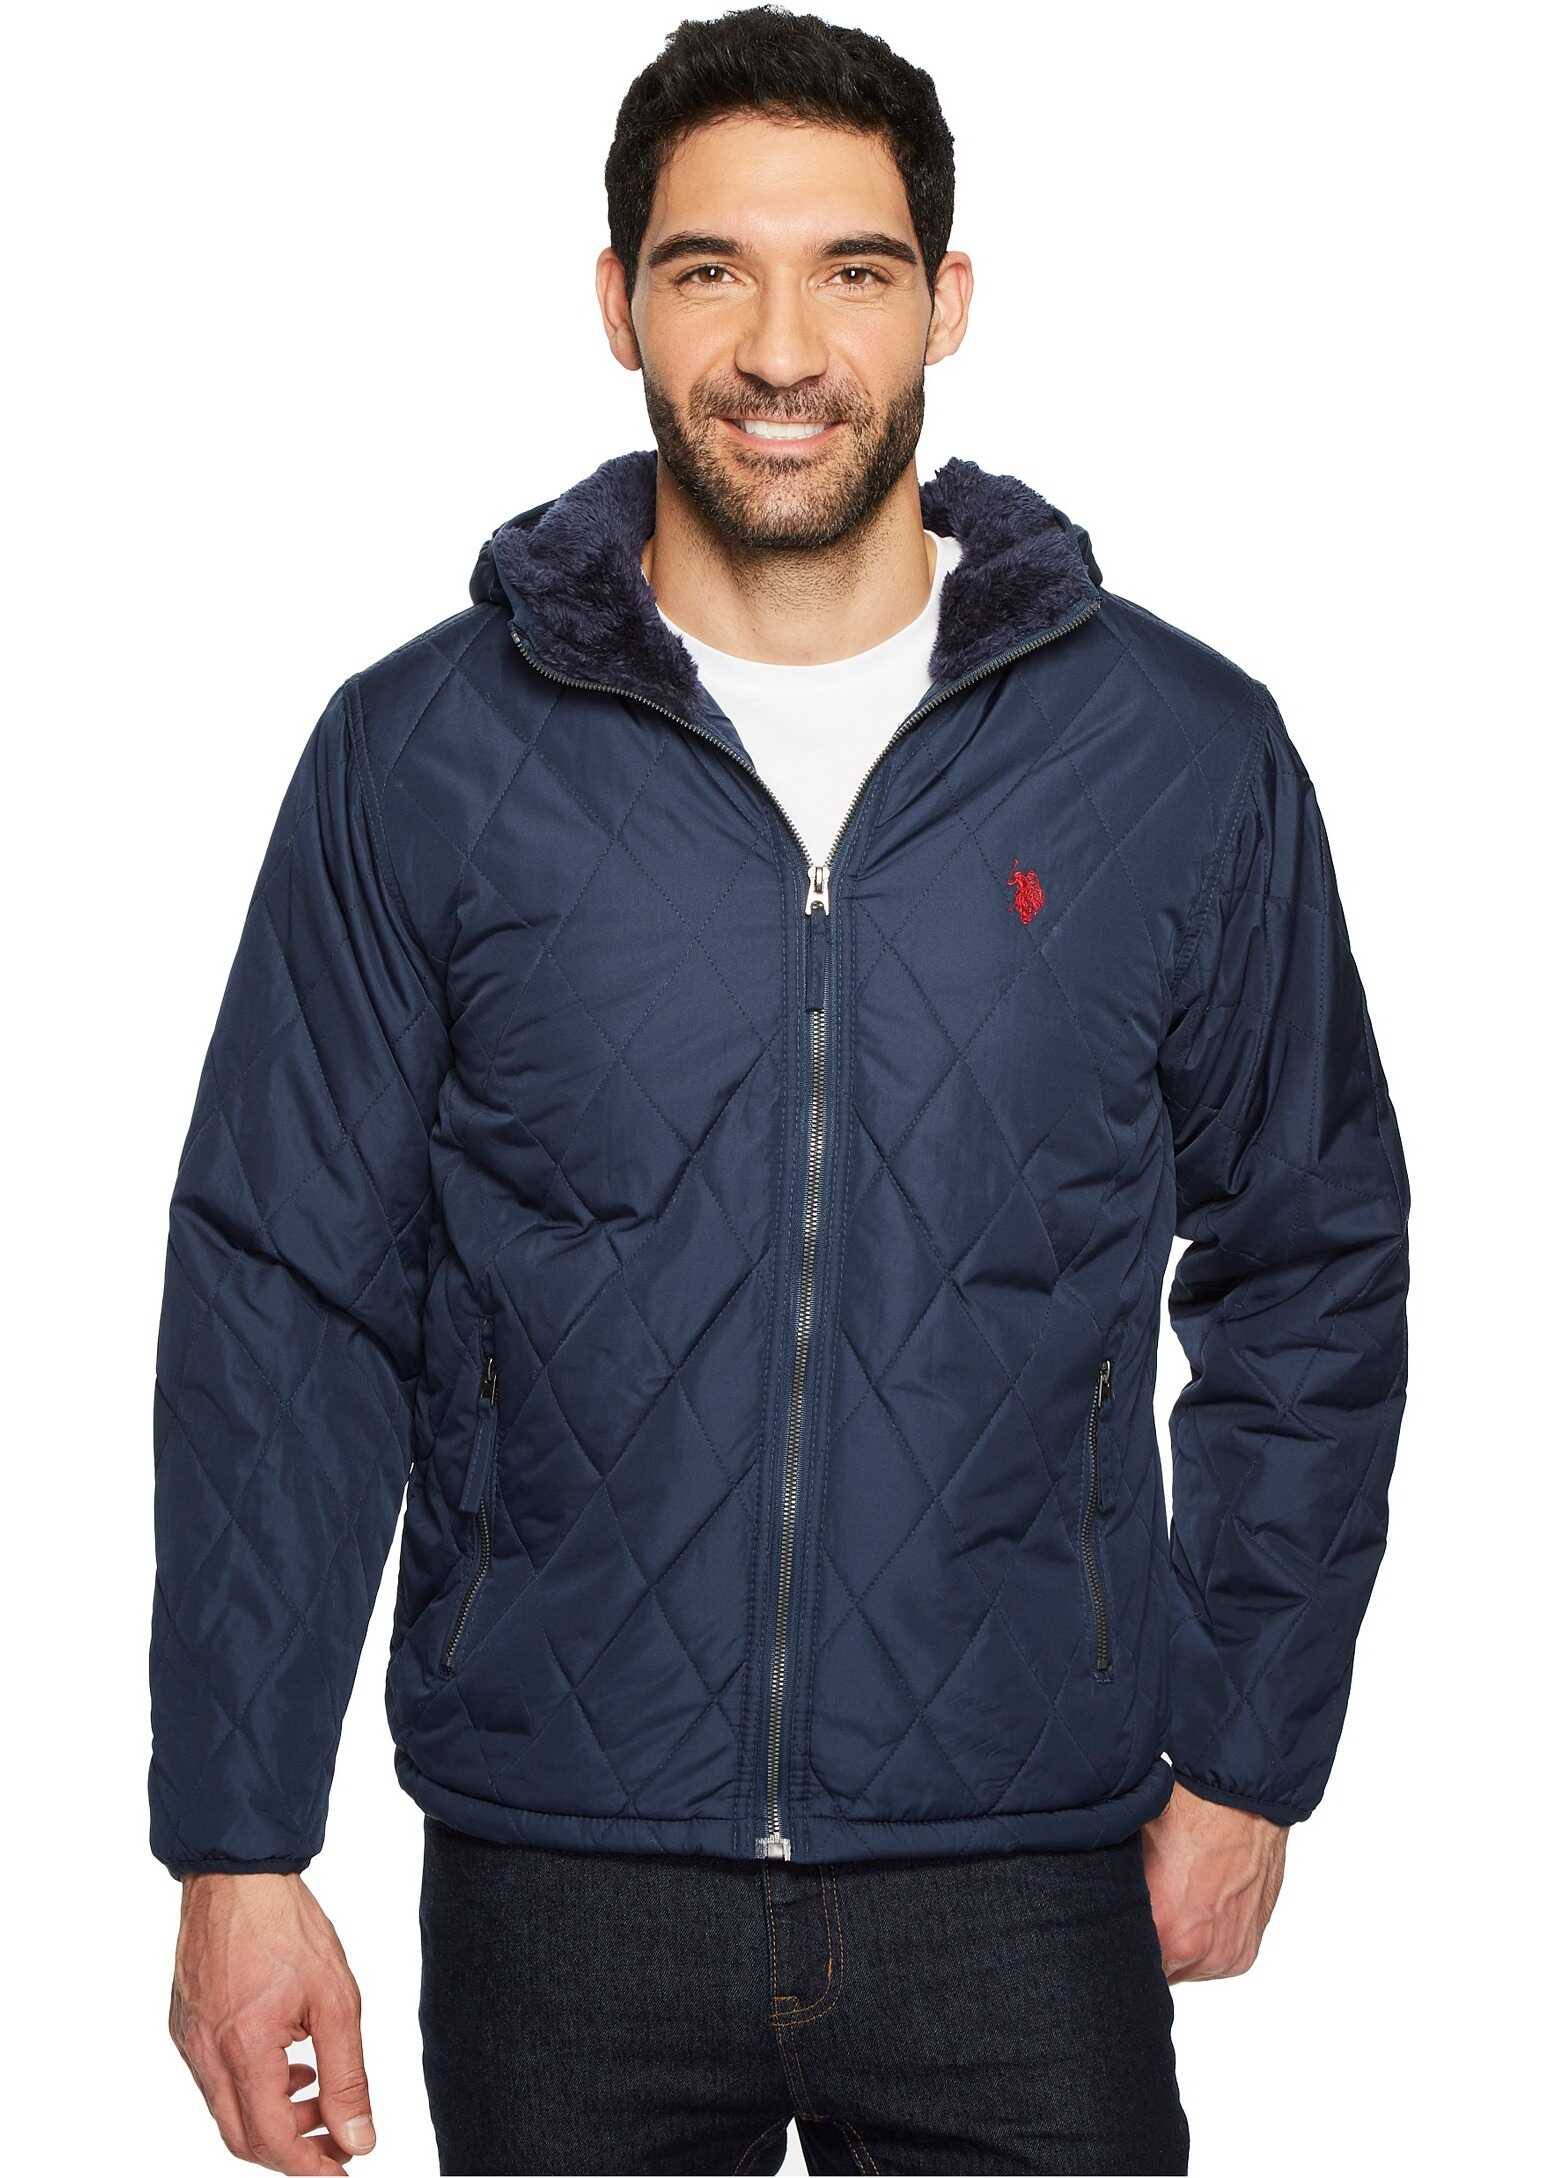 U.S. POLO ASSN. Diamond Quilted Hooded Jacket Classic Navy